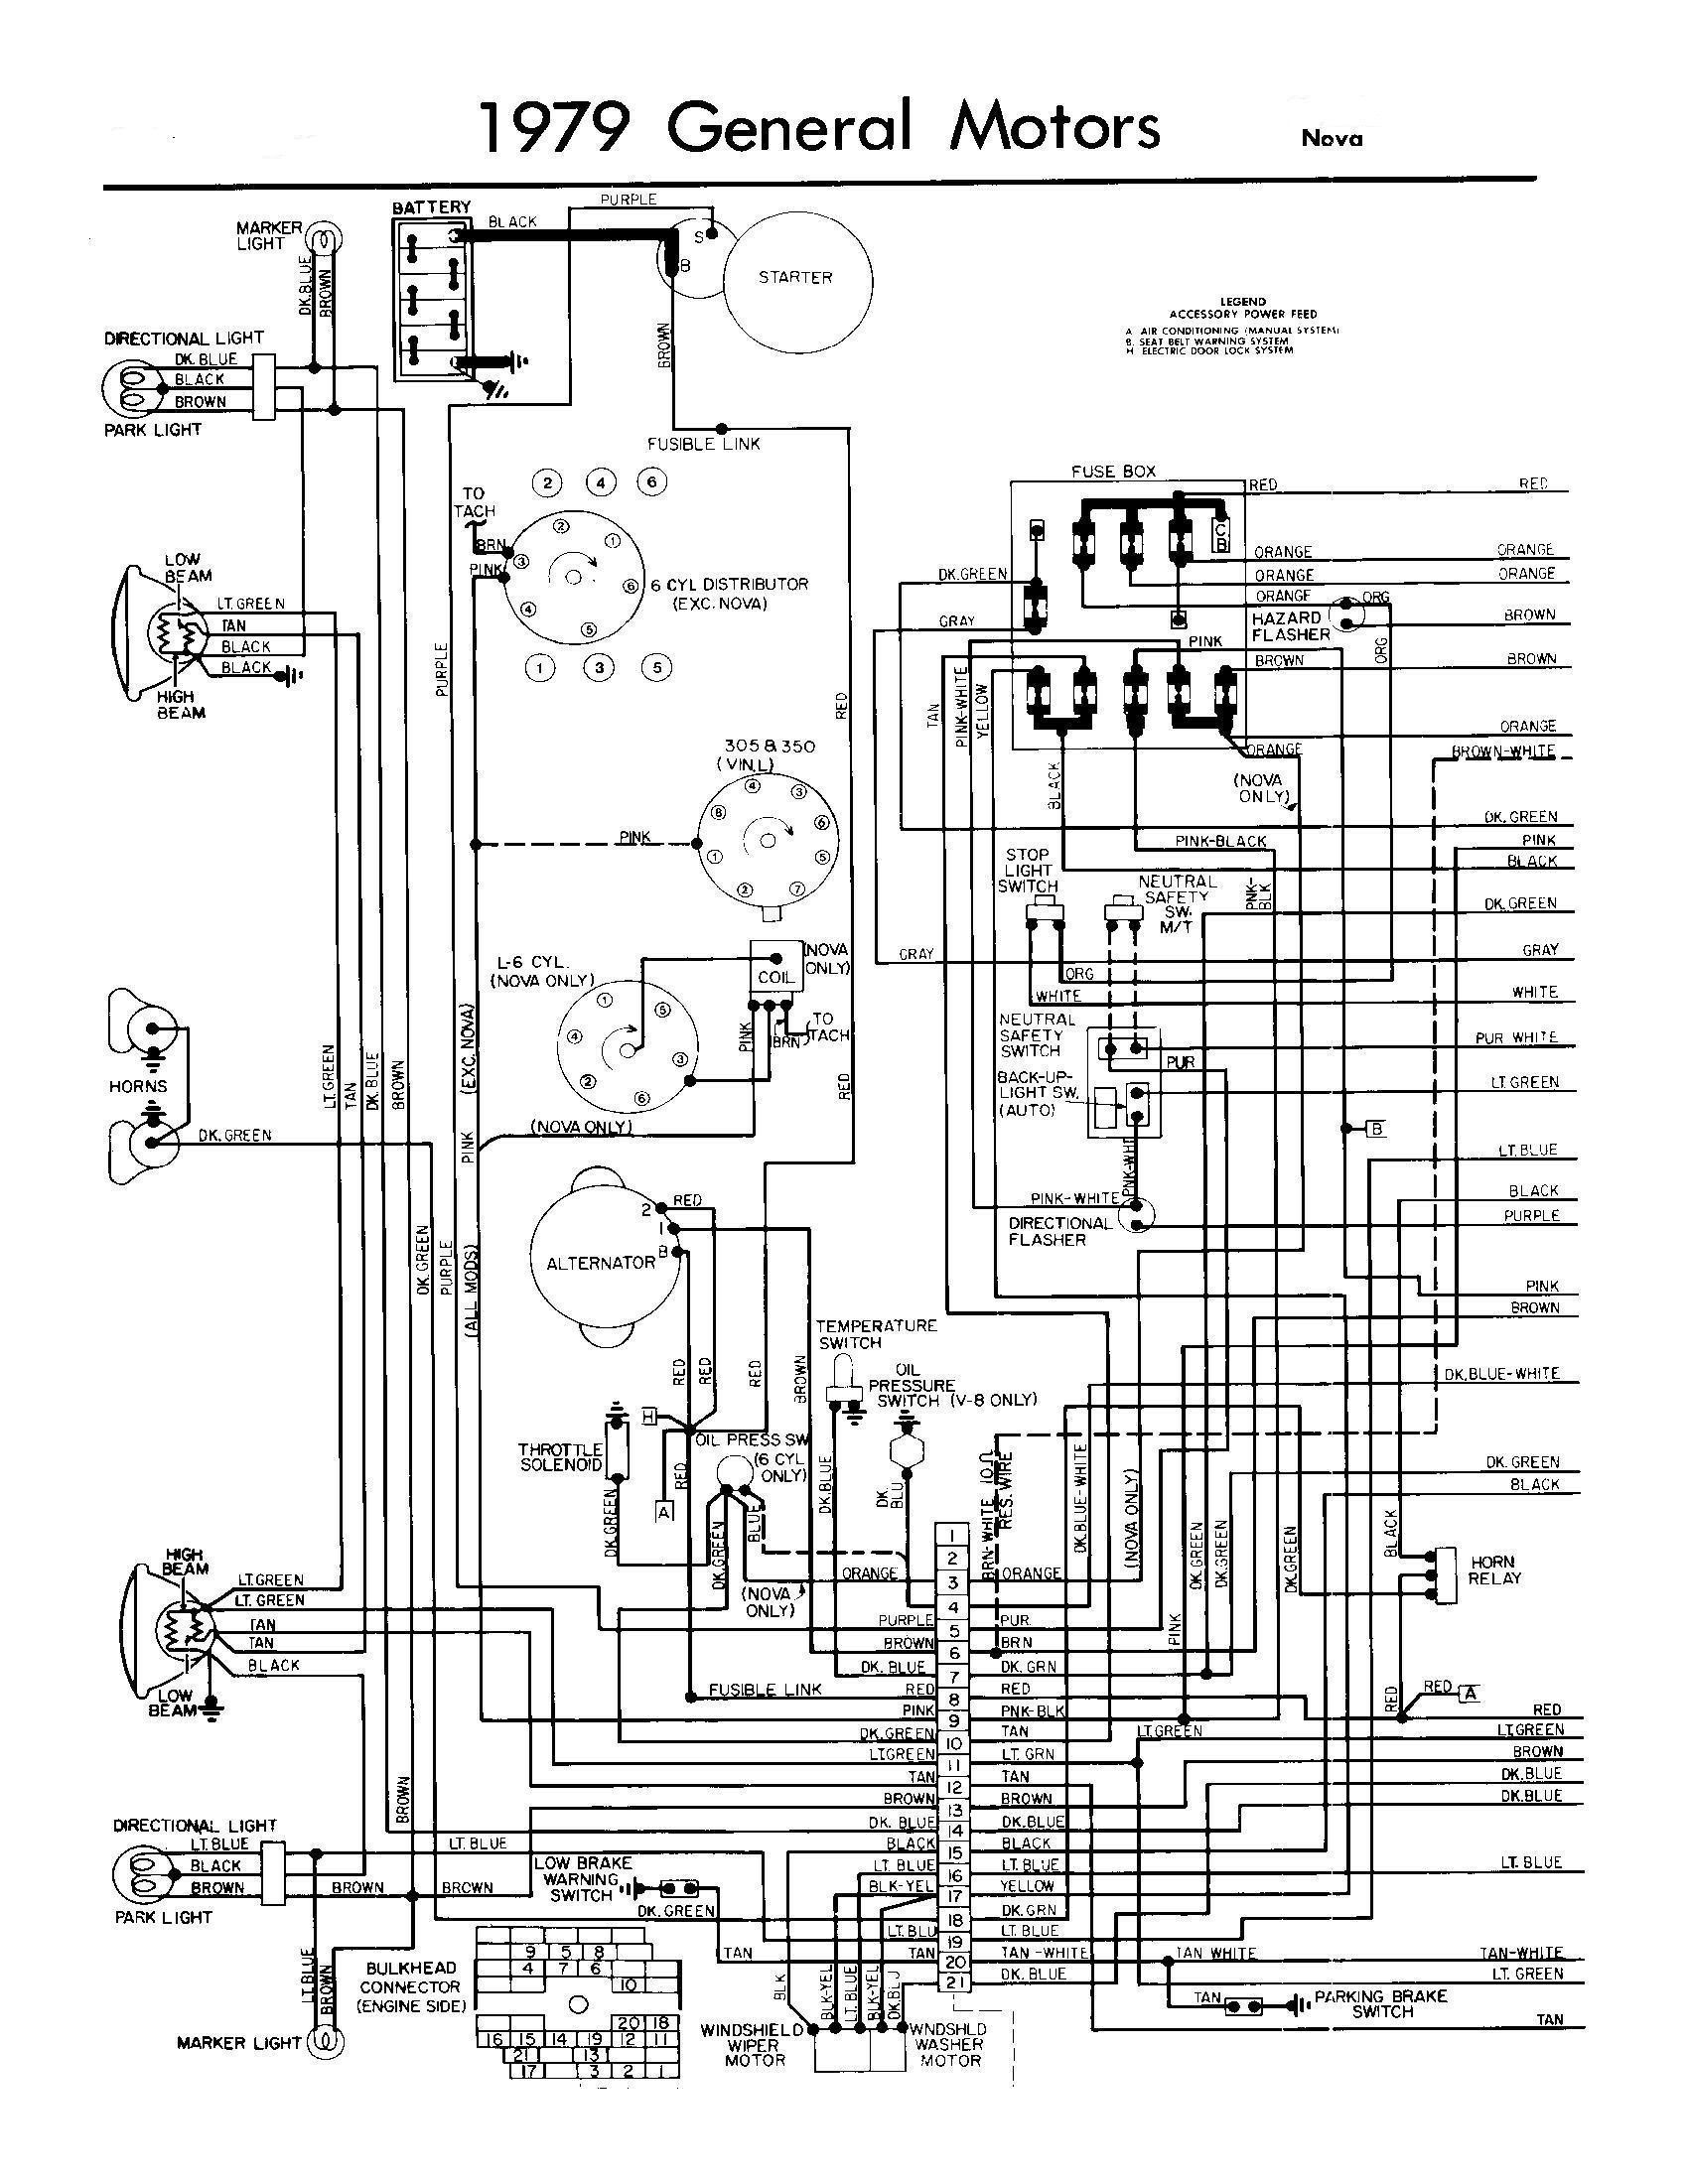 ignition switch wiring diagram 1963 jeep j 200 free vehicle wiring rh generalinfo co